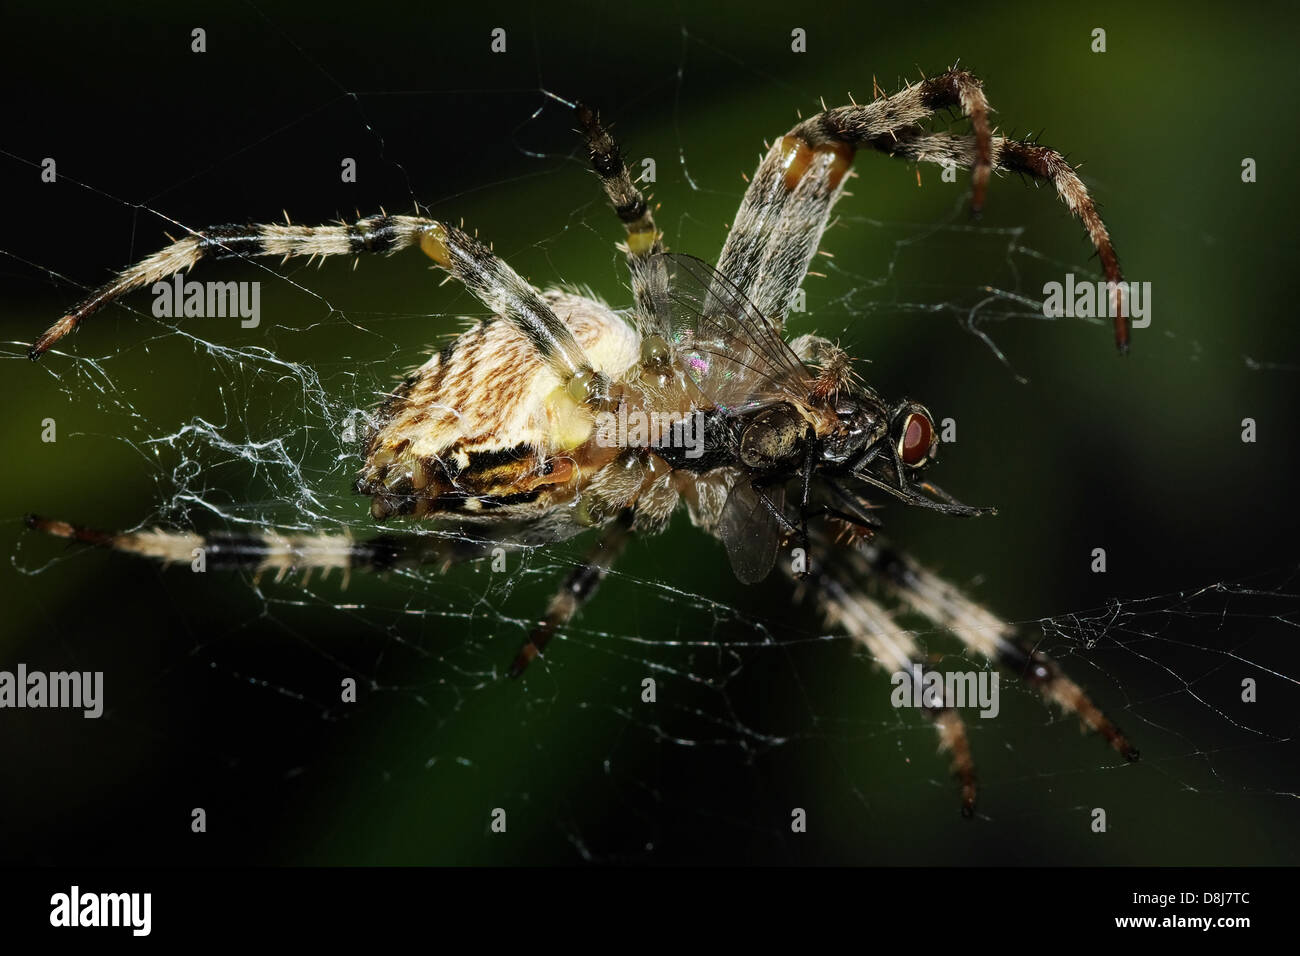 Bottom View of a Spider - Stock Image